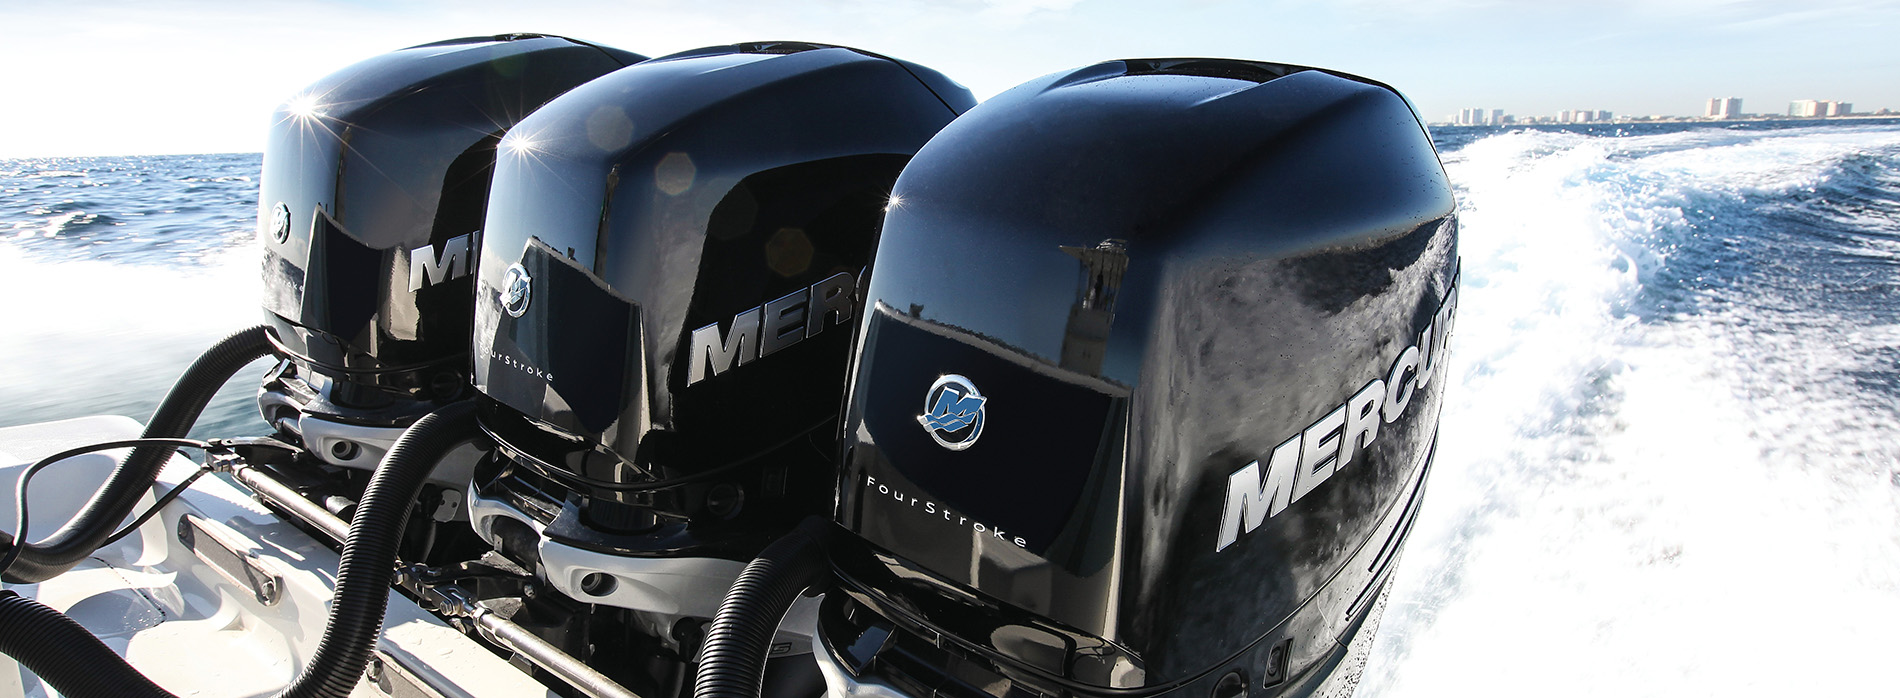 Marine Mechanics Institute Launches First Mercury Marine ...